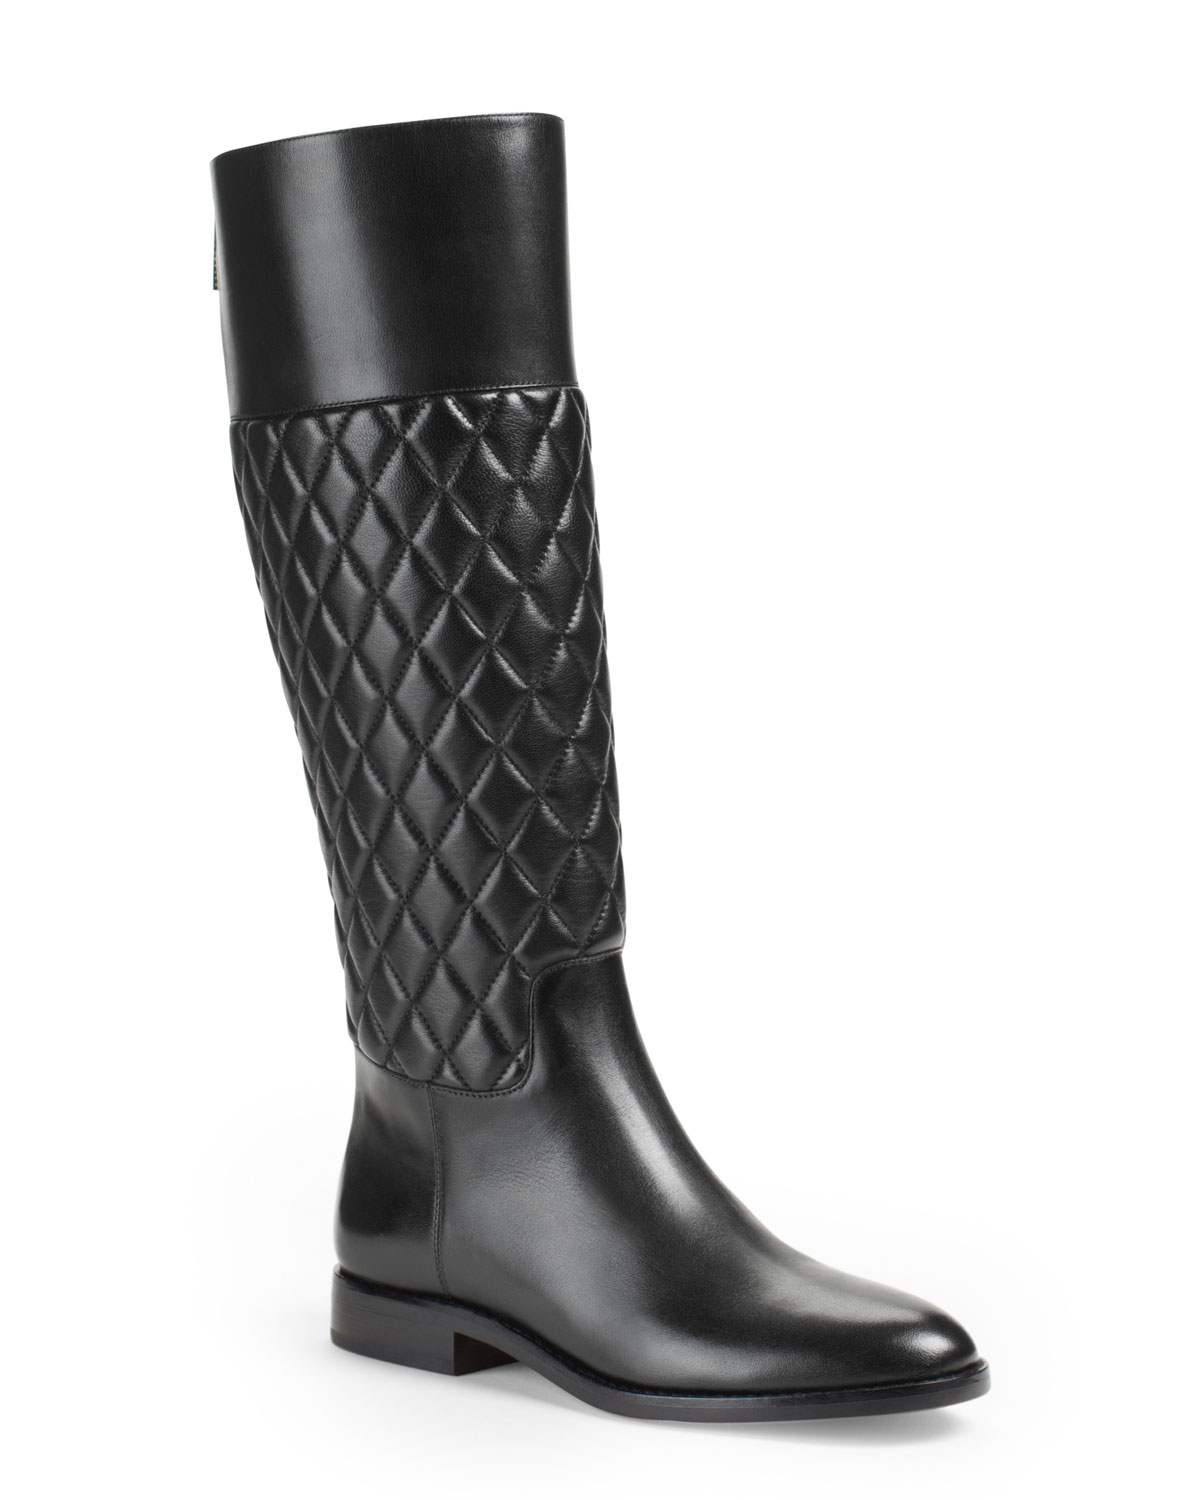 michael kors mina quilted leather knee boot in black lyst. Black Bedroom Furniture Sets. Home Design Ideas